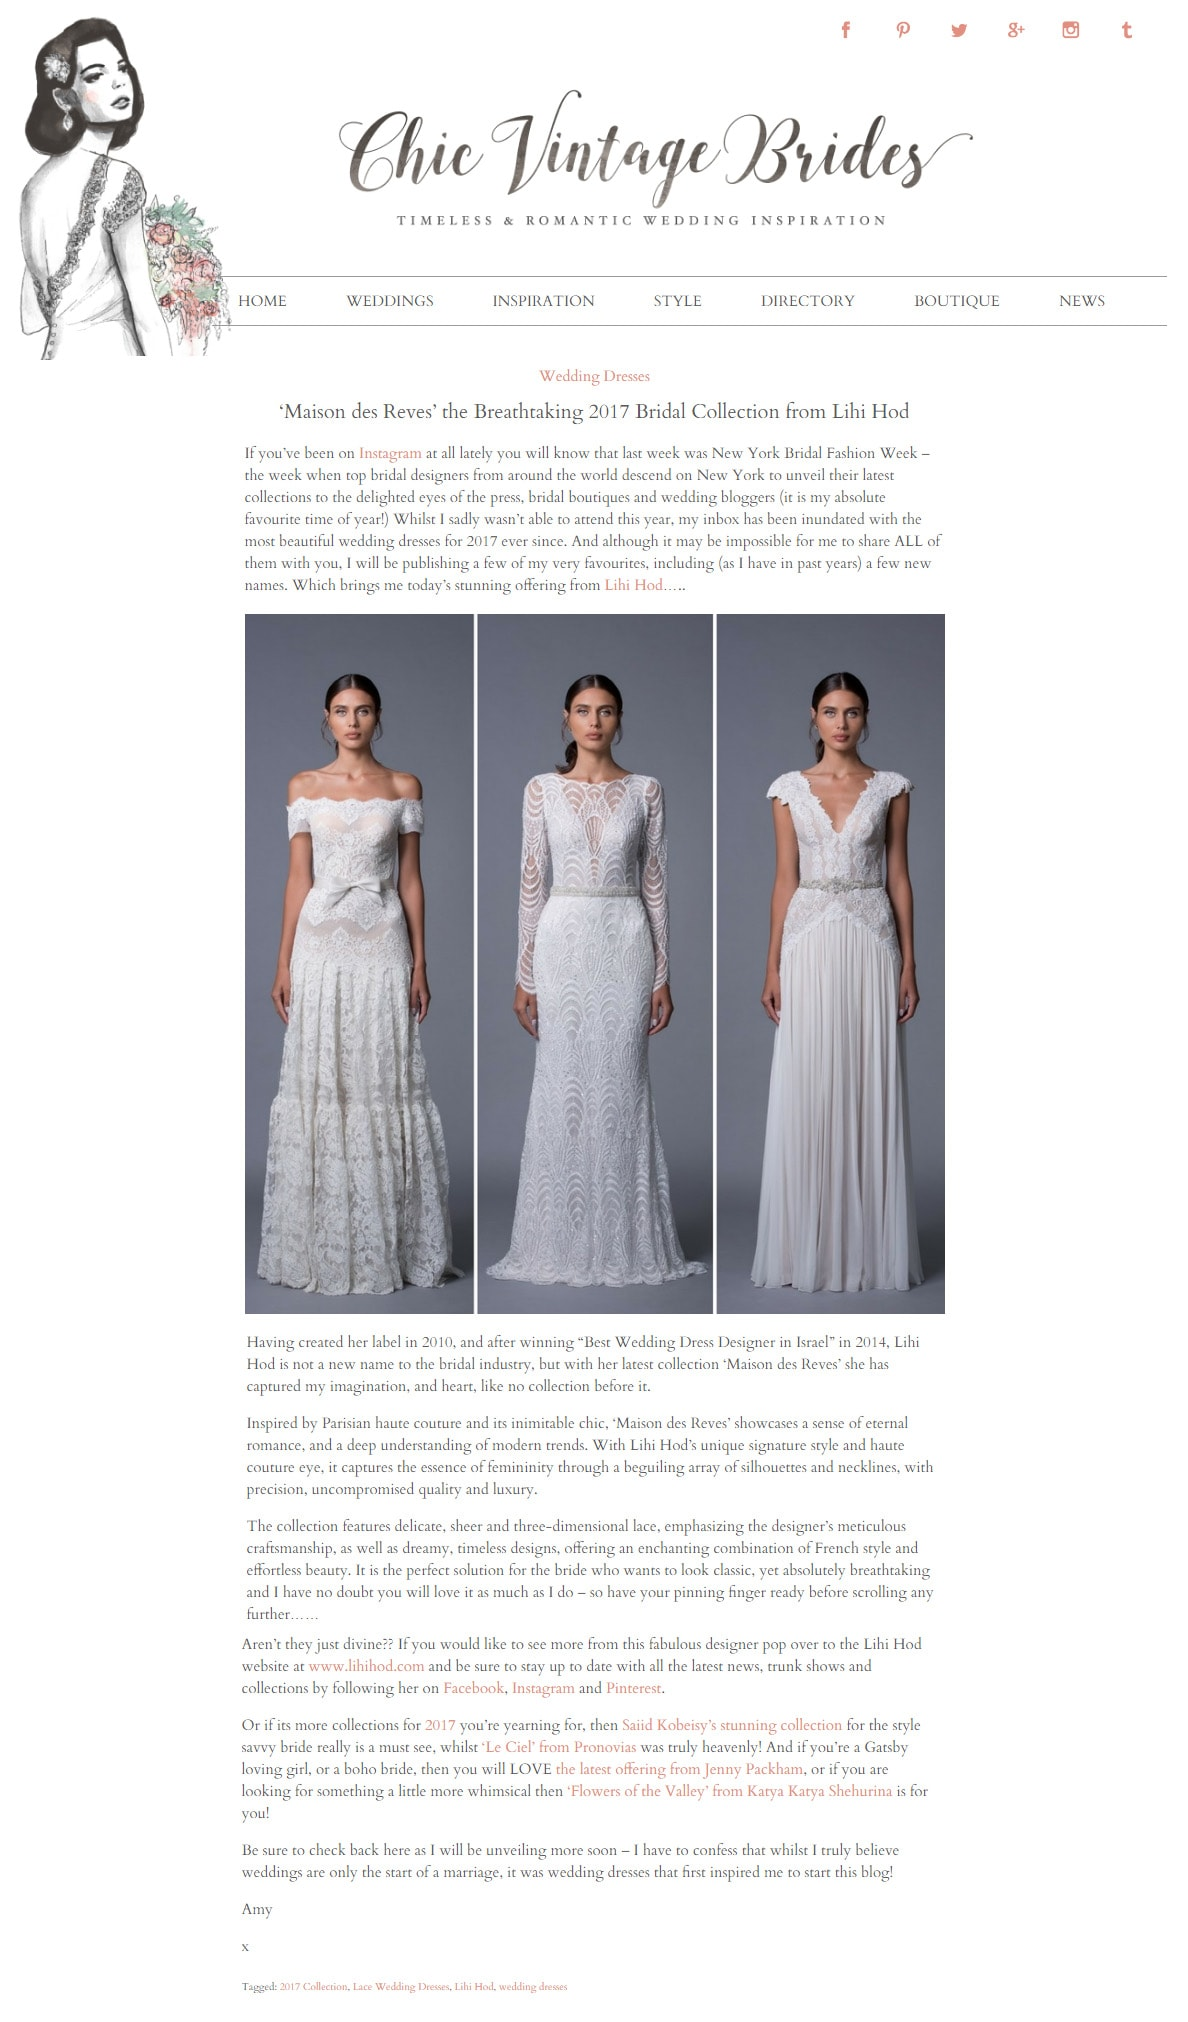 Chic Vintage Bride: 'Maison des Reves' the Breathtaking 2017 Bridal Collection from Lihi Hod